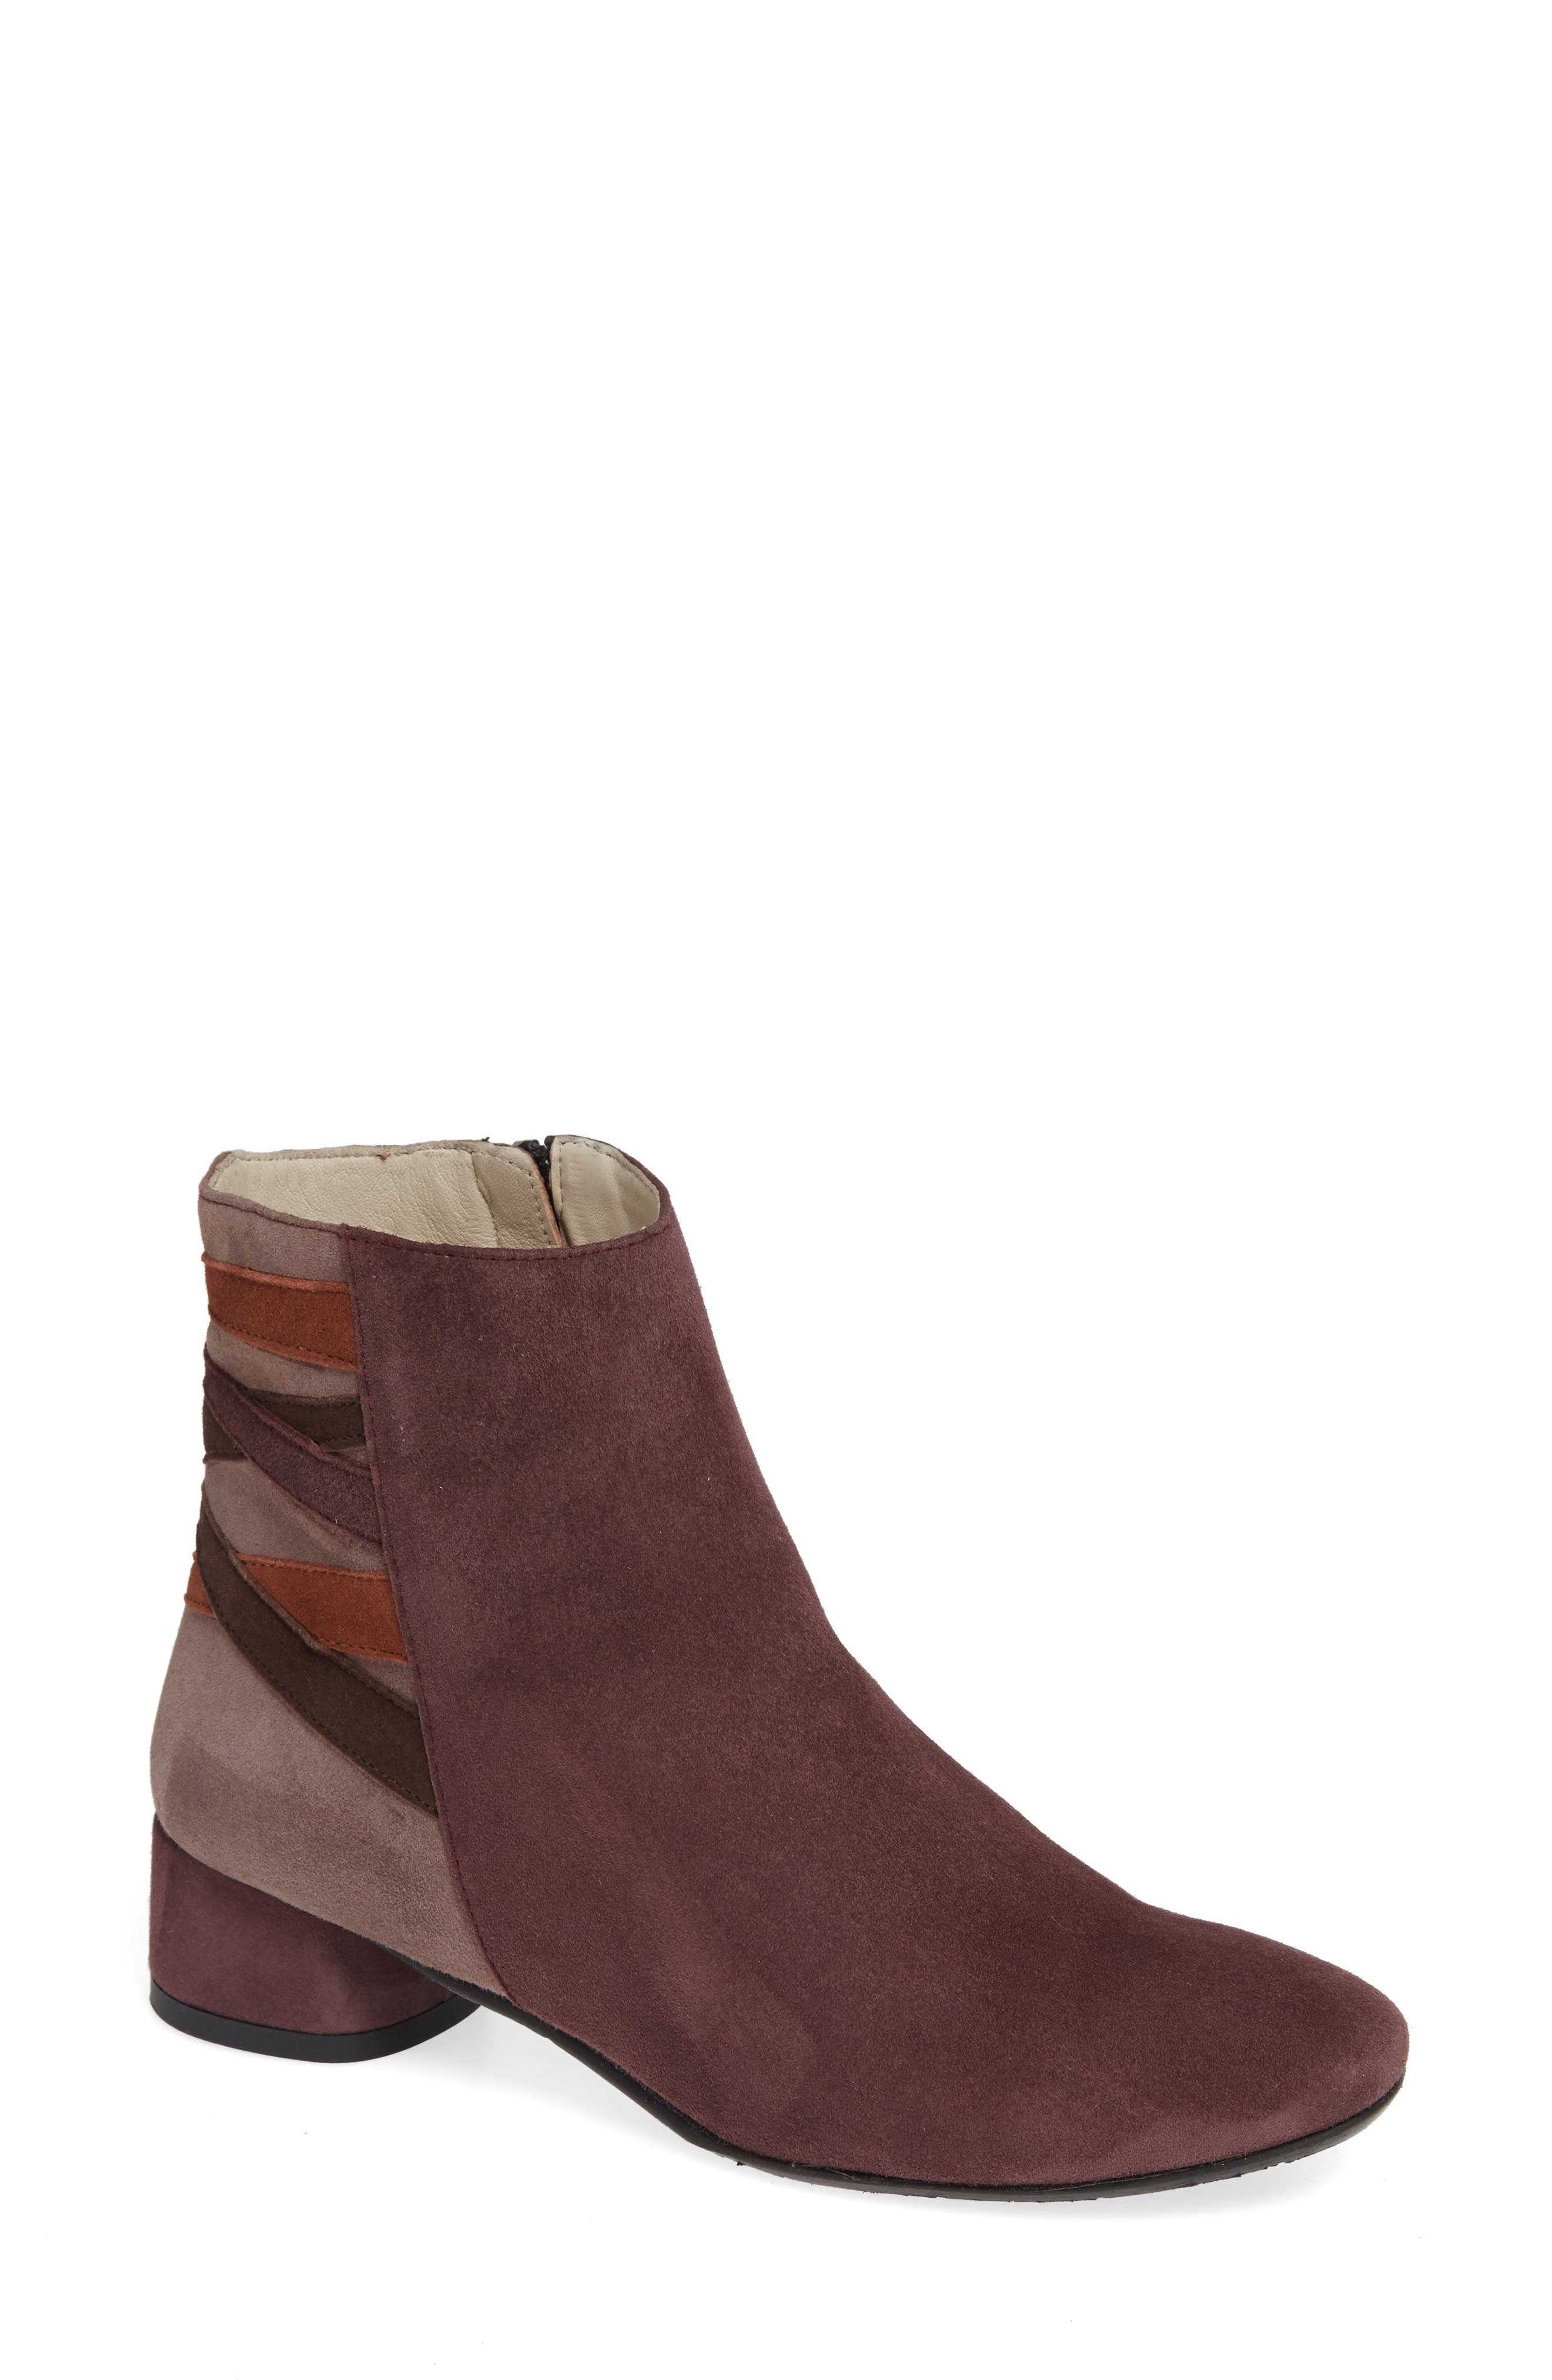 AMALFI BY RANGONI Rustico Bootie in Eggplant Suede